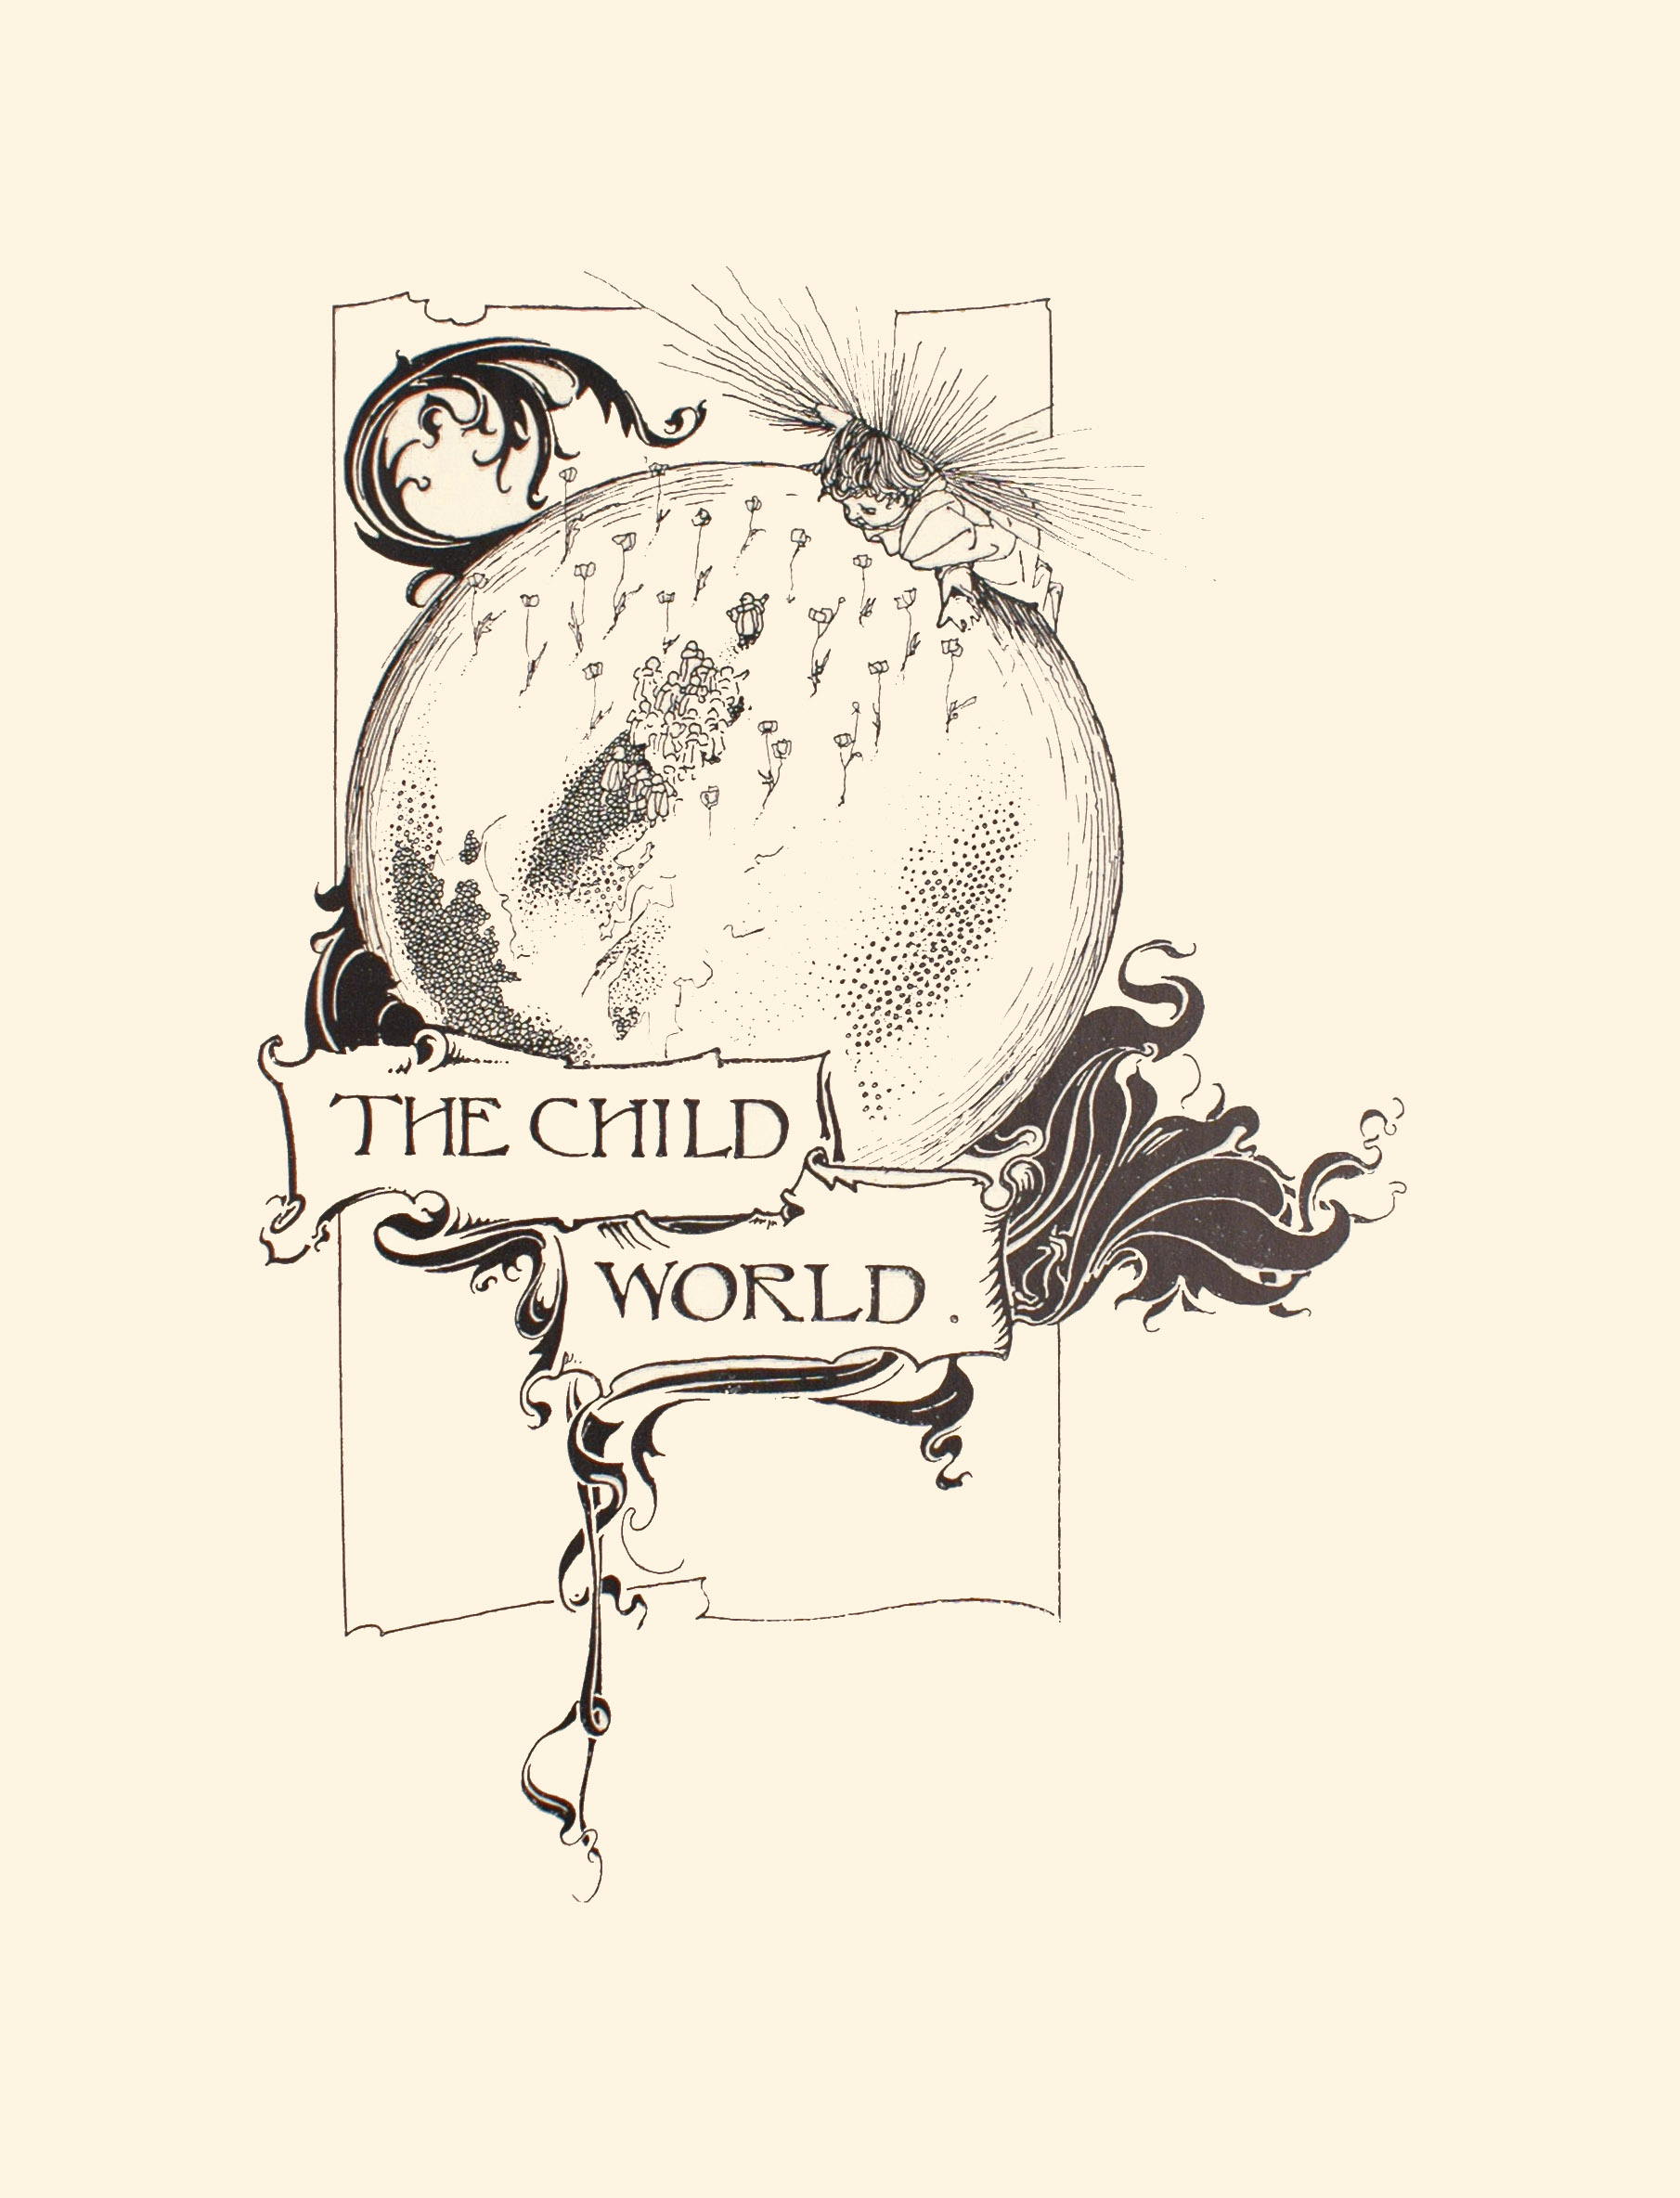 Image is of a child perched atop the upper right hand side of a globe The child has rays of light coming out the crown of his head He is leaning downward toward the globe his hands are stretched out The globe s presentation of countries and water is not shown through lines but through dots and flowers In the middle of the globe is a small crowd of people one figure is standing apart from the group with arms open Underneath the globe is a banner reading THE CHILD WORLD The image is vertically displayed